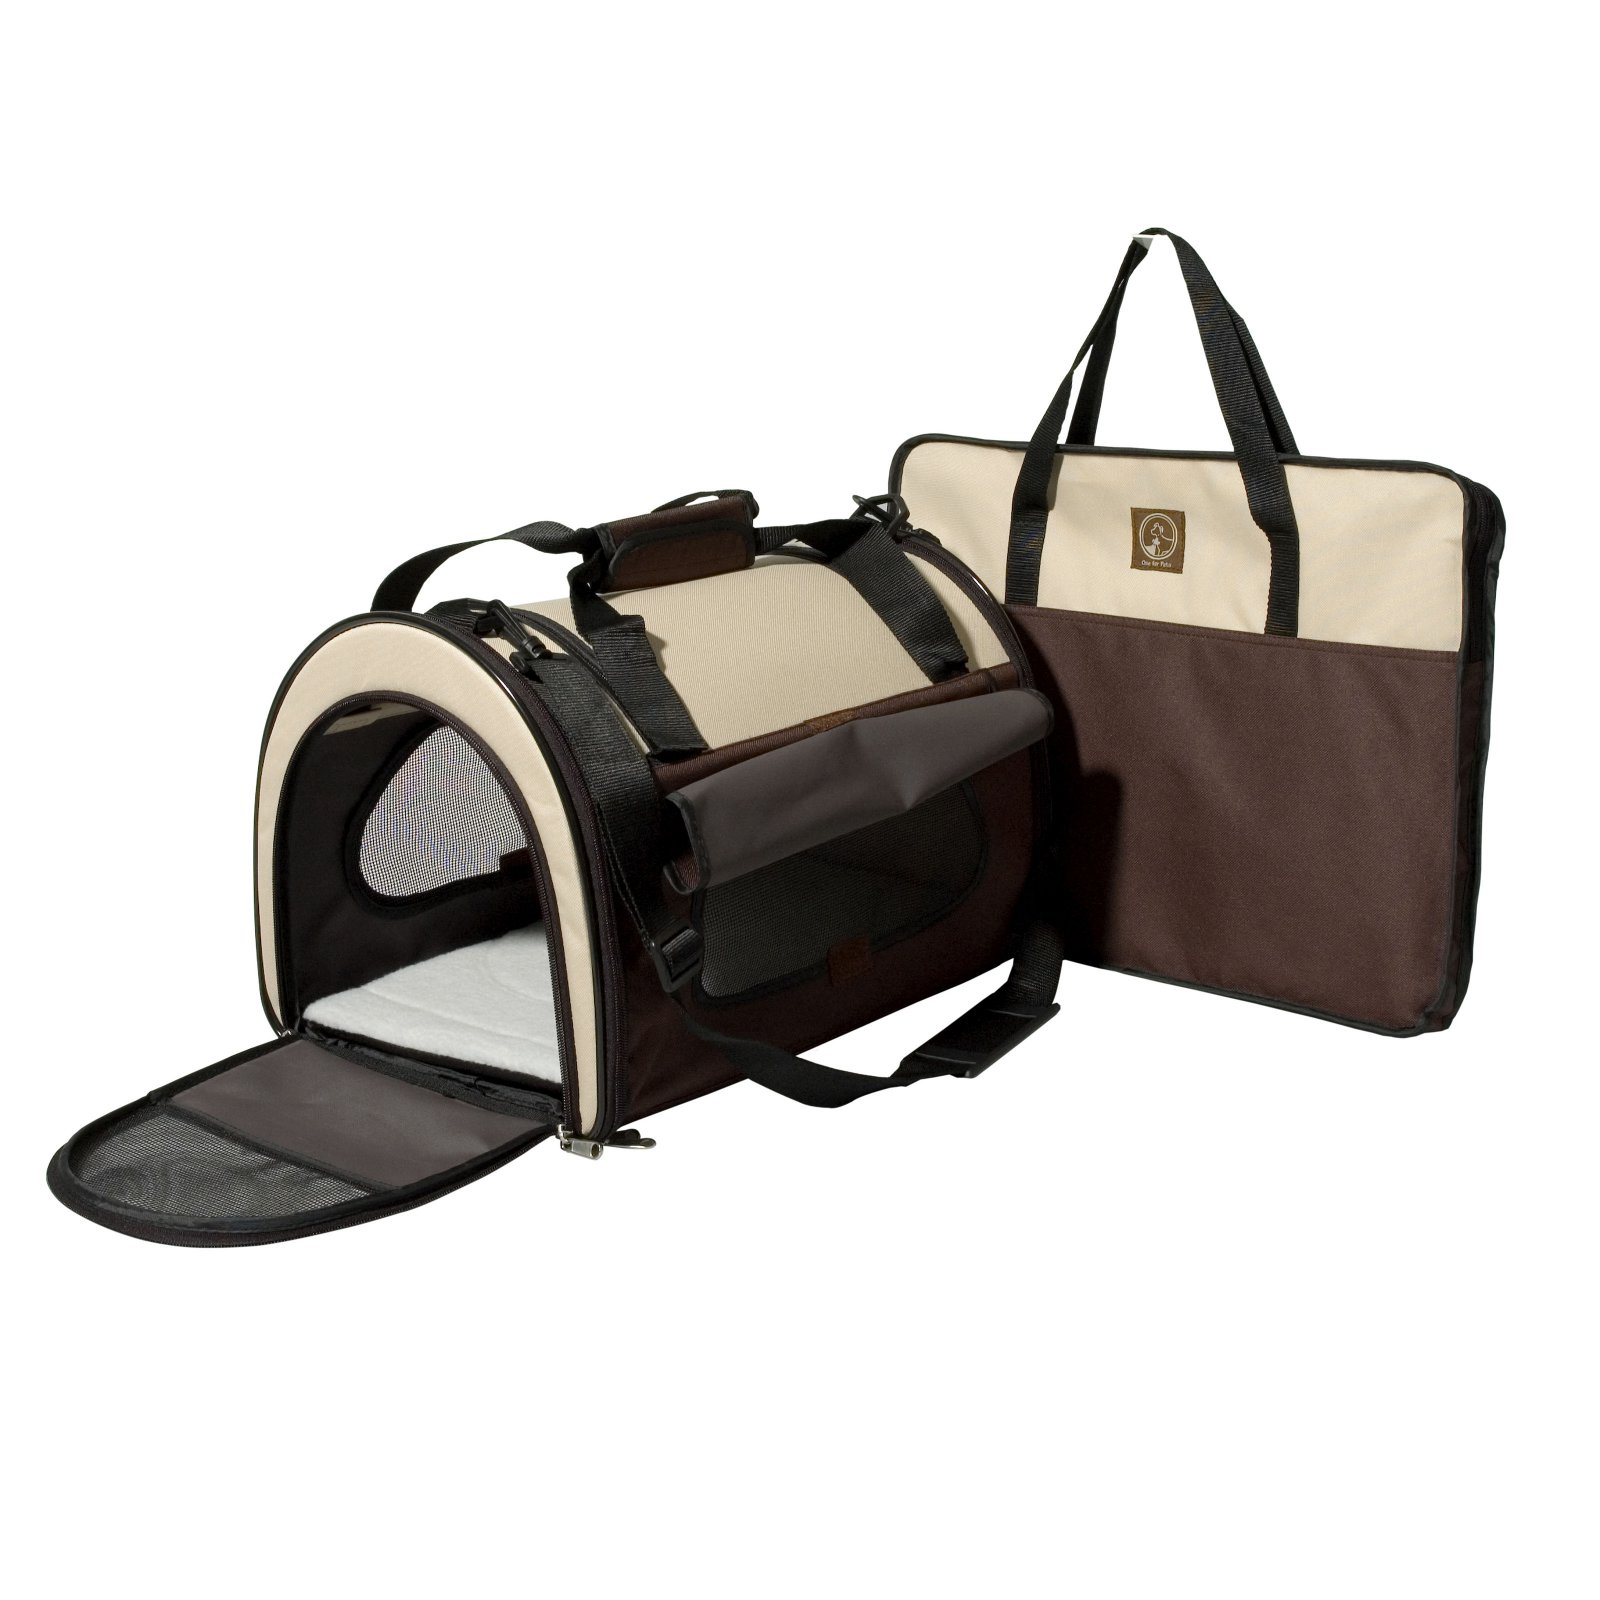 One For Pets Folding Carriers - The Dome